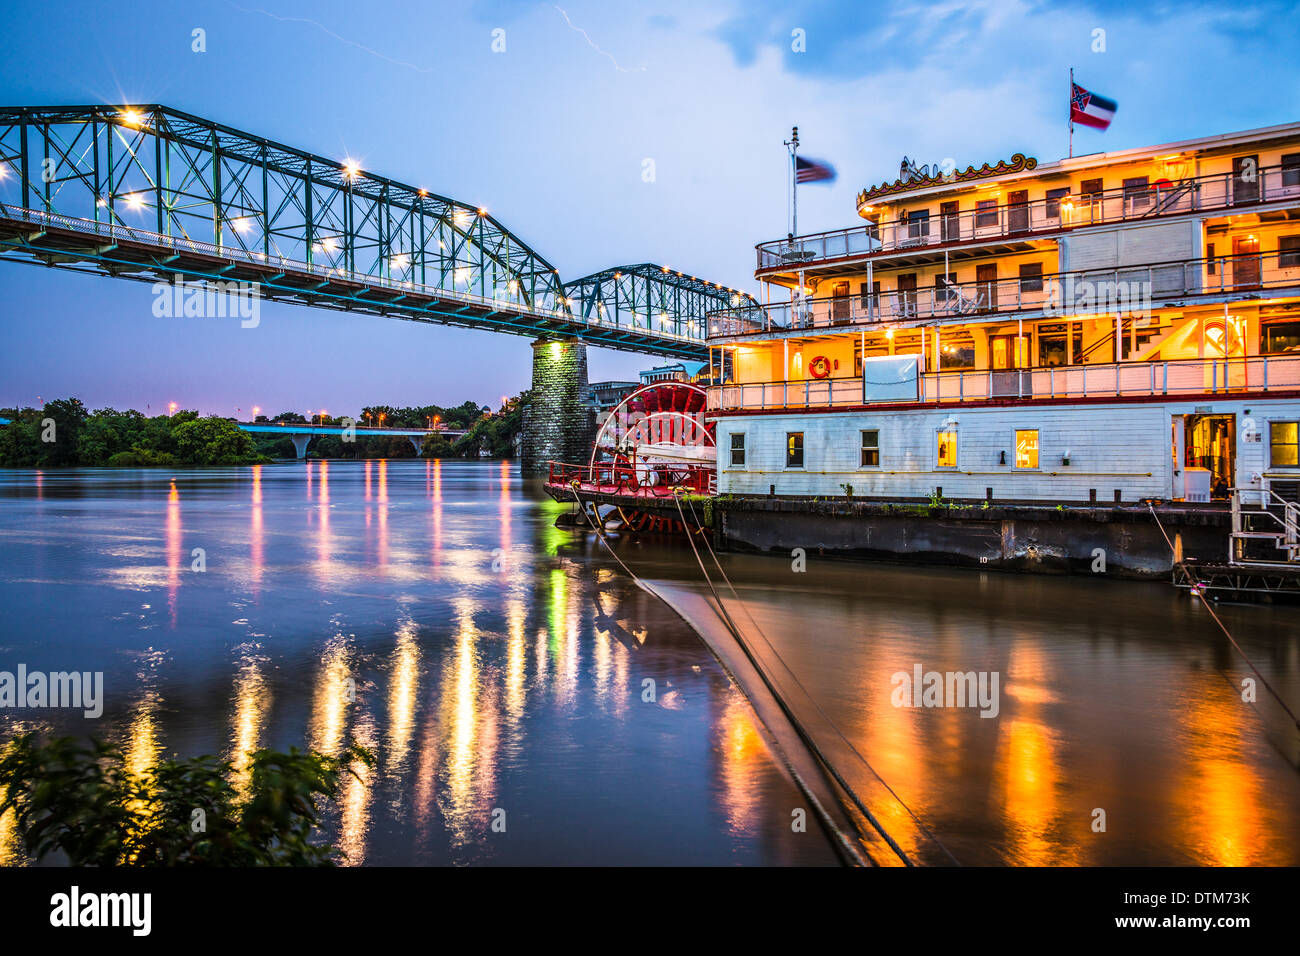 Chattanooga, Tennessee, USA at night on the river. - Stock Image